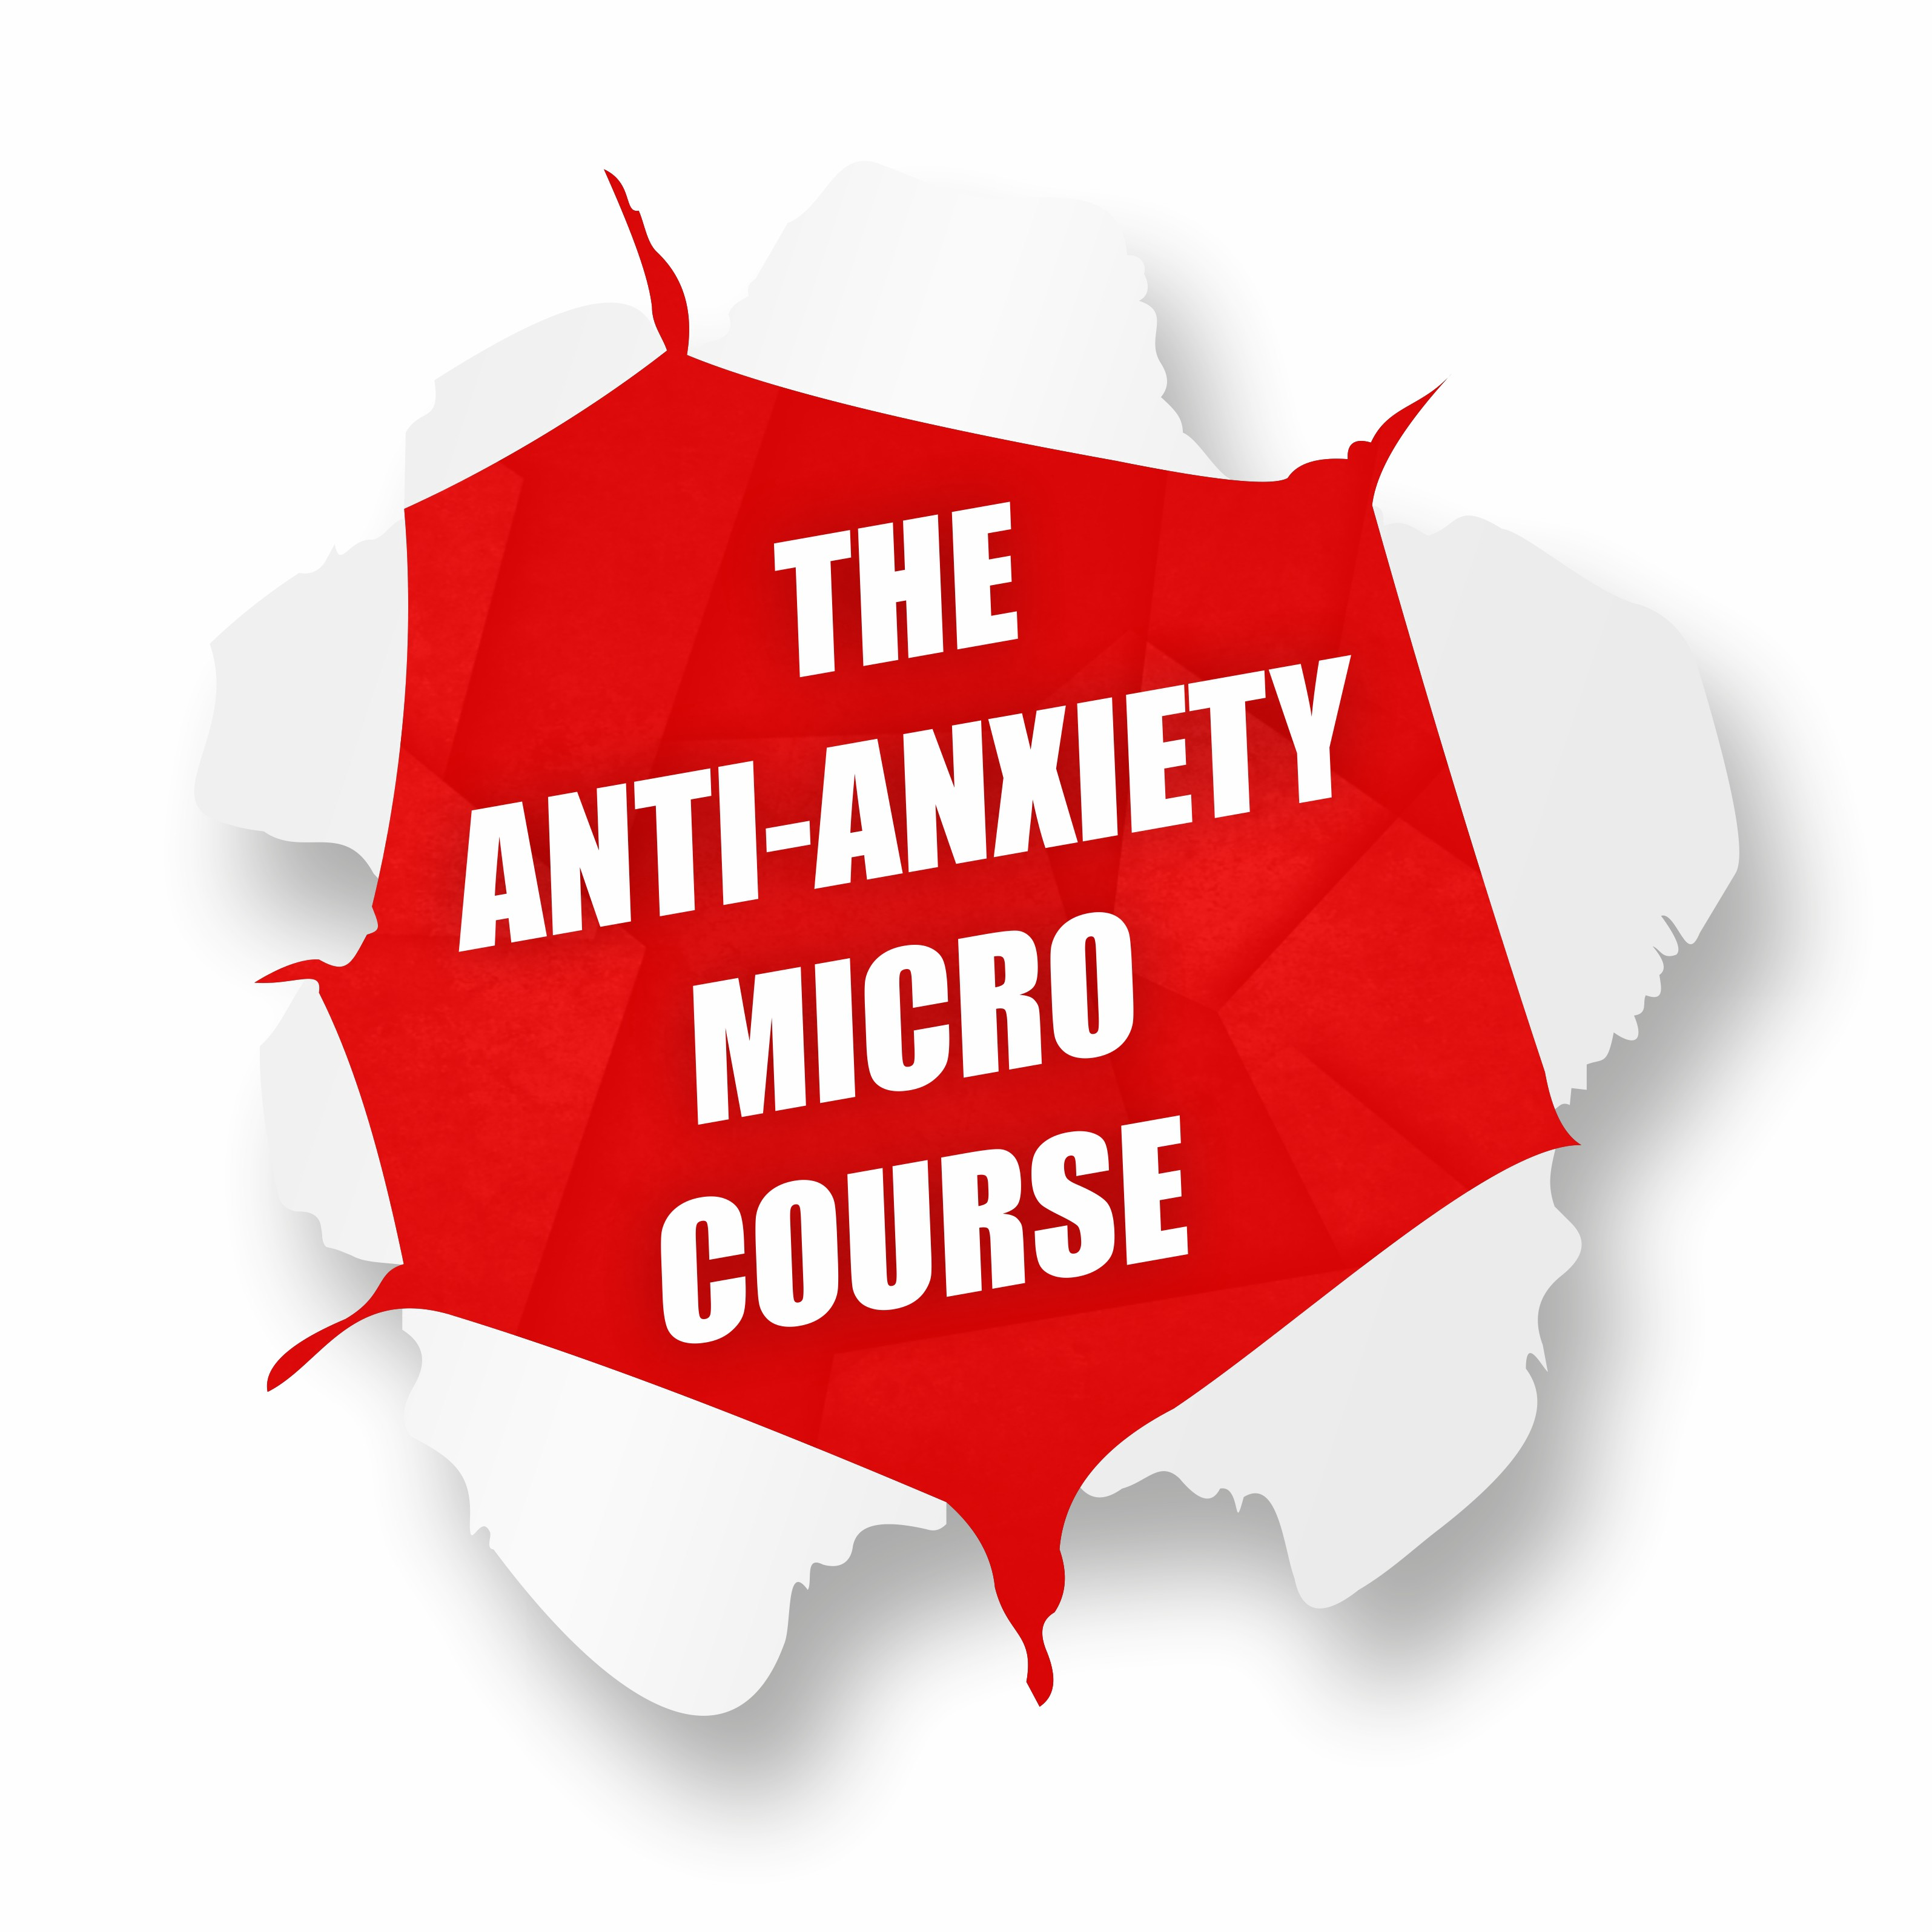 Can T Do My Job Because Of Anxiety work has me crippled with anxiety. is it time to quit?